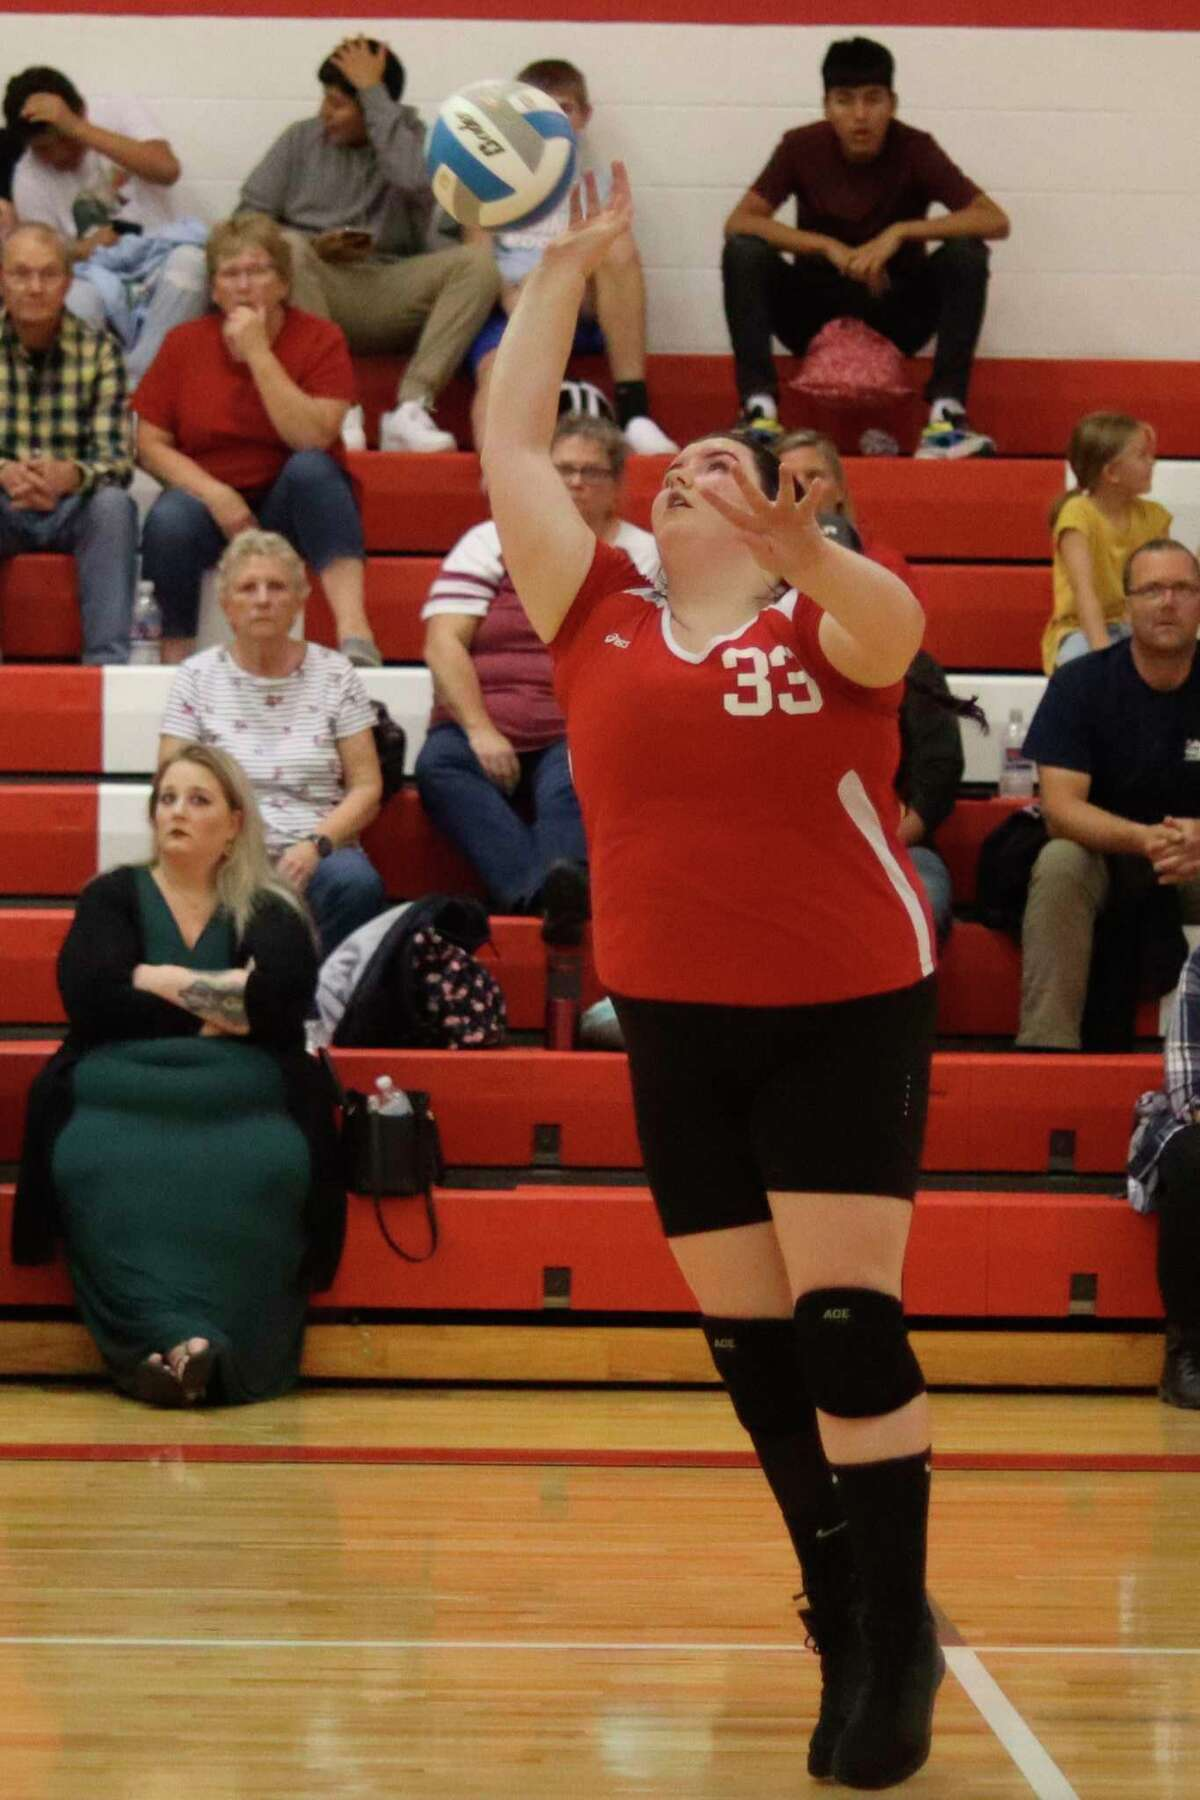 Makayla Omar drive the ball over the net for the Lakers on Sept. 21. (Robert Myers/News Advocate)